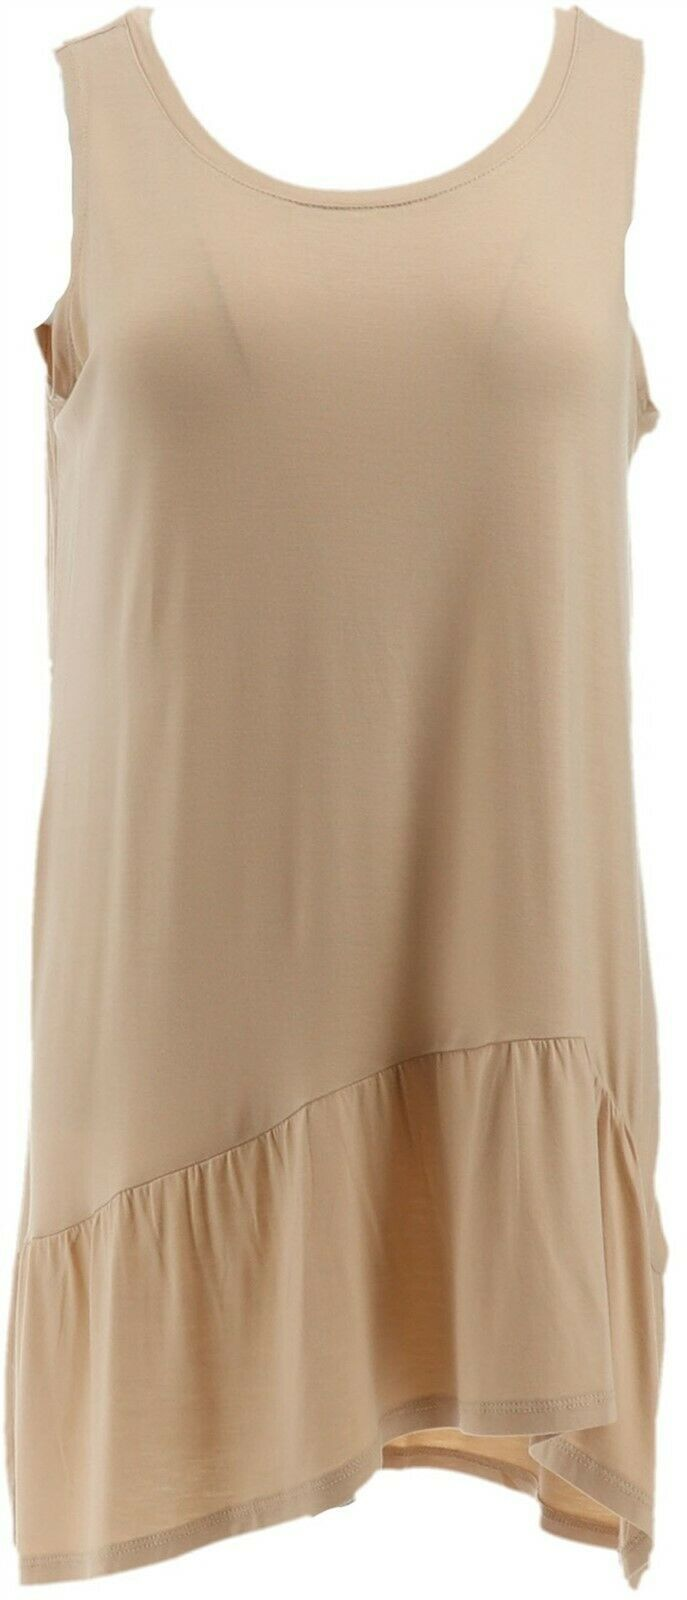 Primary image for LOGO Layers Lori Goldstein Knit Tank Asymmetrical Peplum Sandstone S NEW A285366